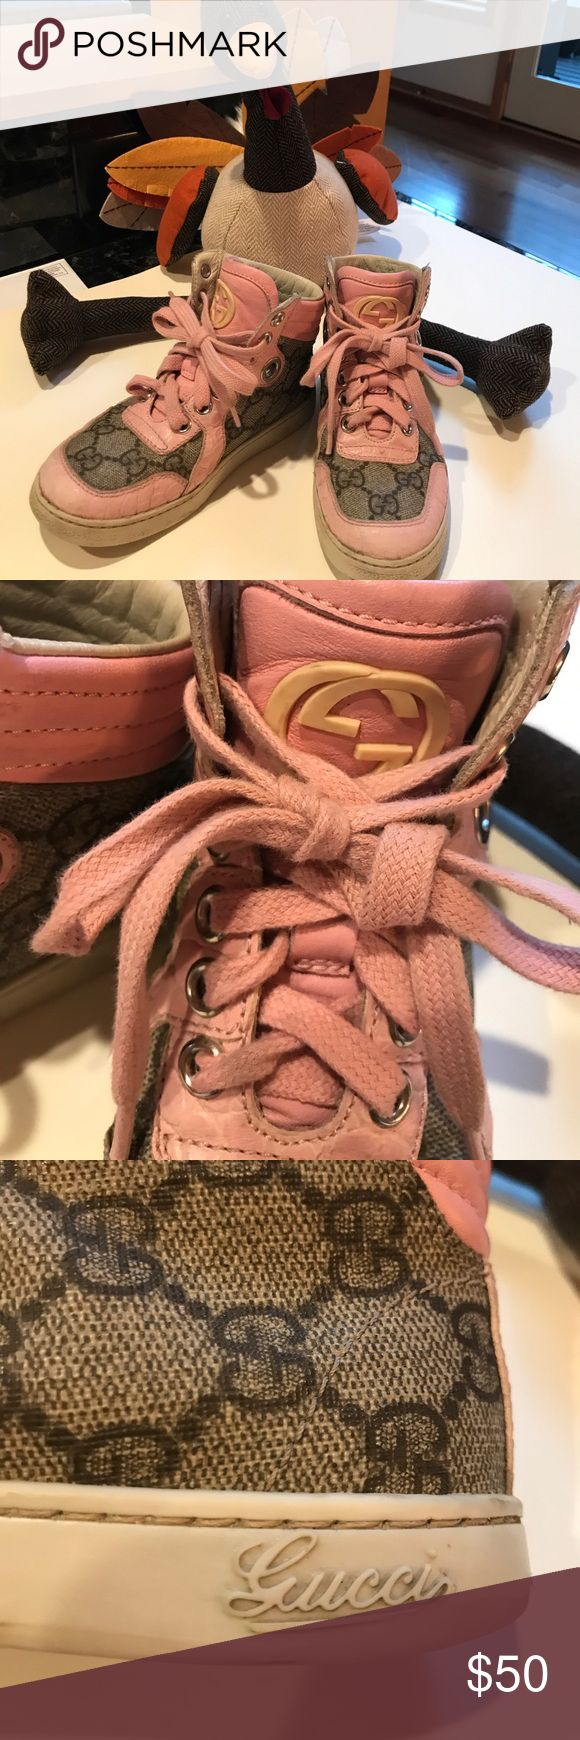 Kids Gucci tennis shoes size 27 (8) USA Used in good condition! Size 26 (8) USA Gucci Shoes Sneakers